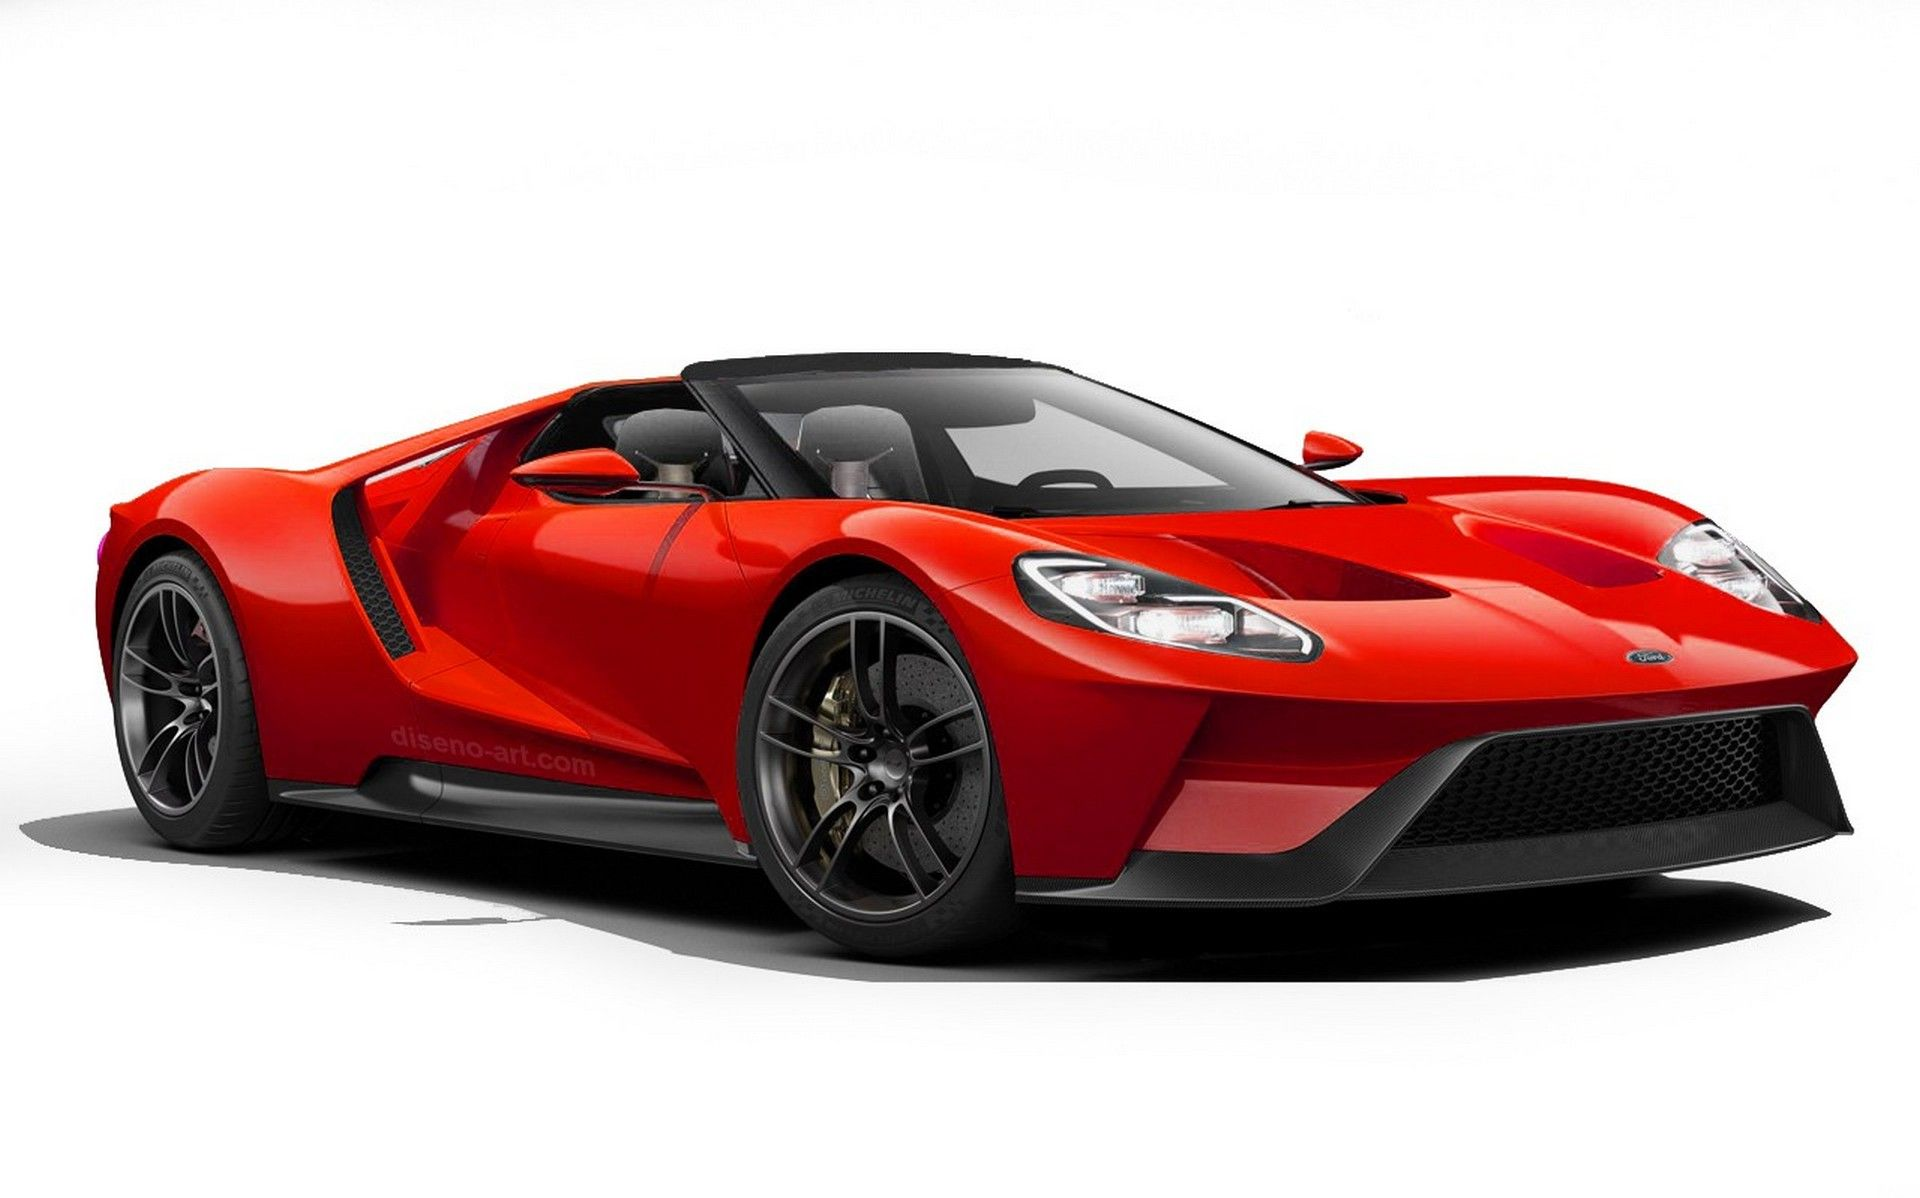 2019 Ford Gt40 Horsepower Top Speed Msrp Price Ford Gt Ford Gt40 Ford